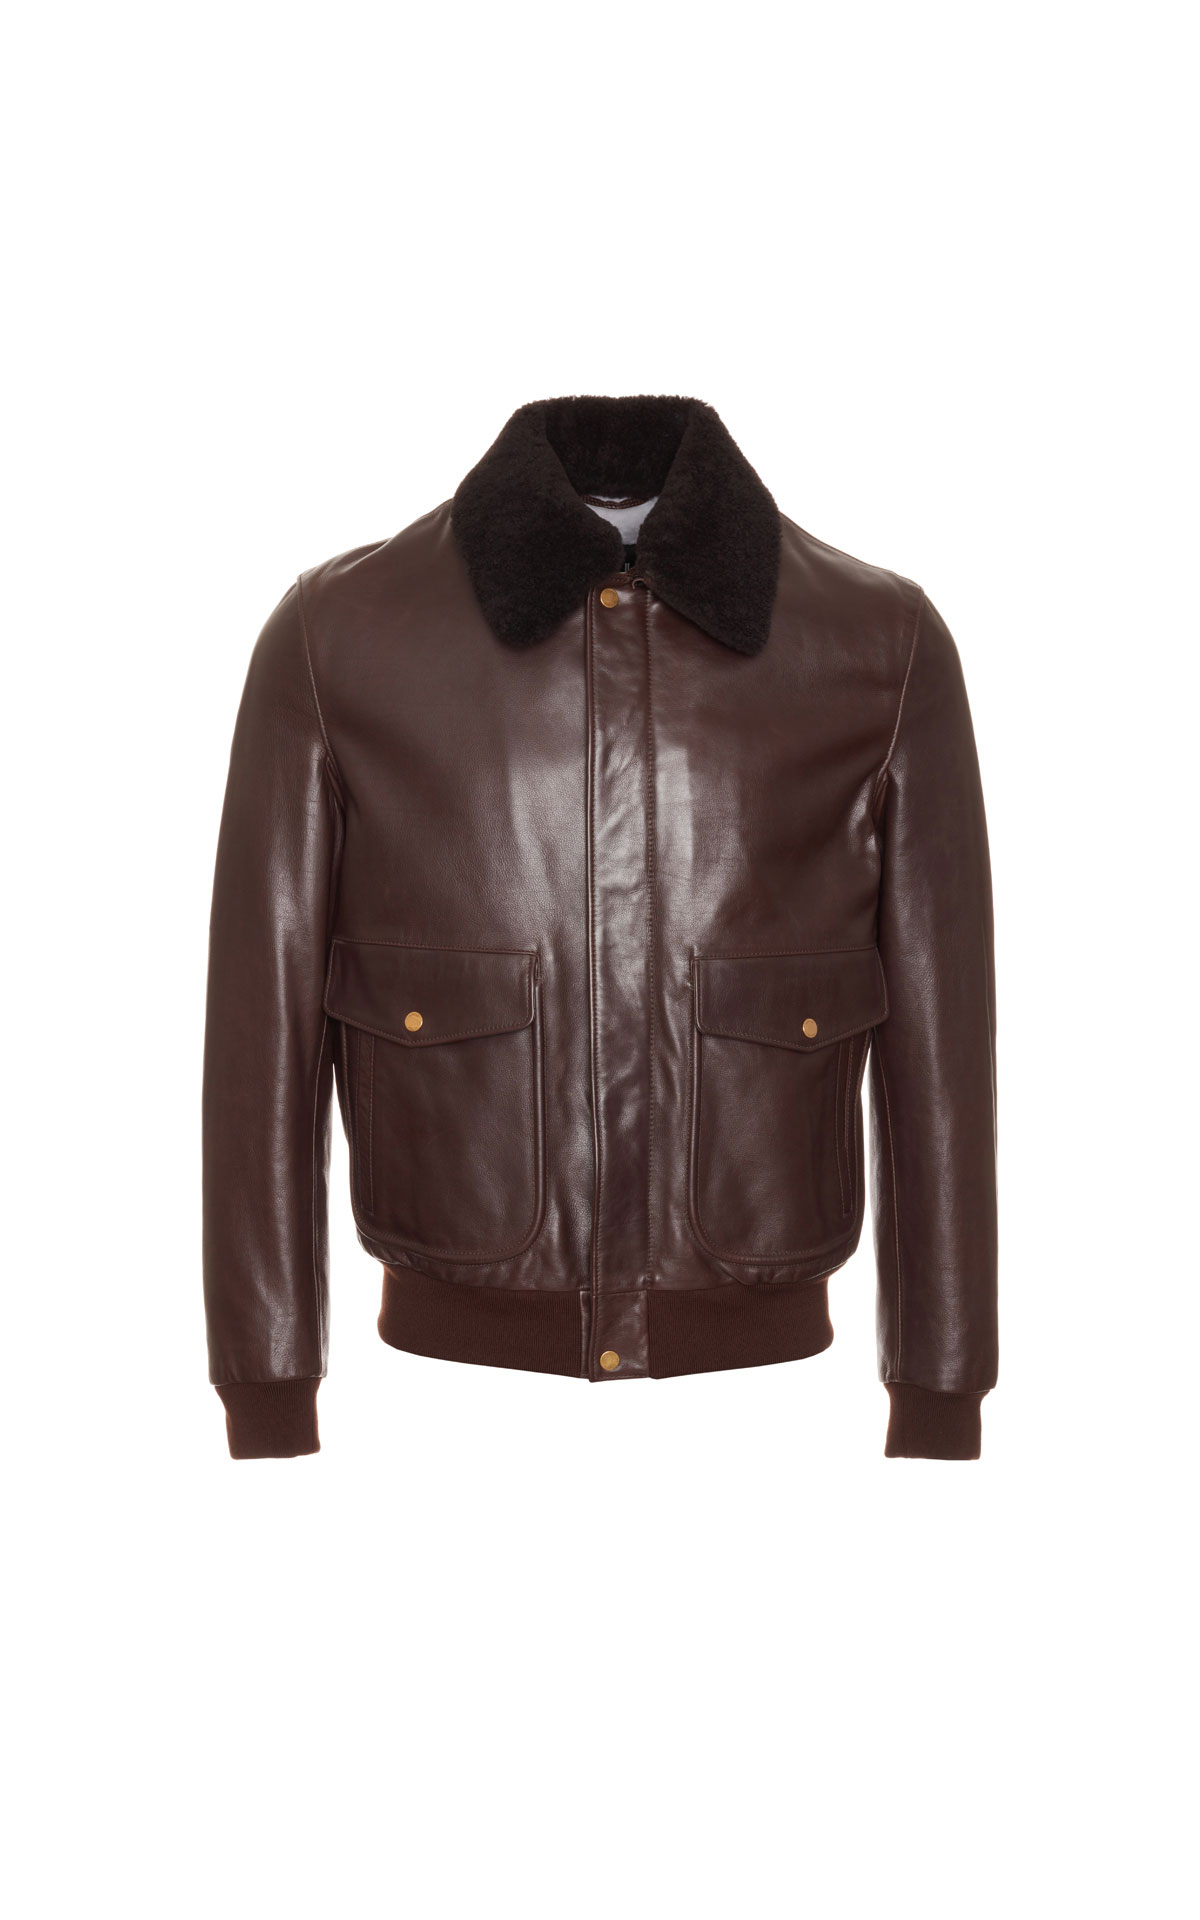 dunhill Men's aviator leather jacket from Bicester Village